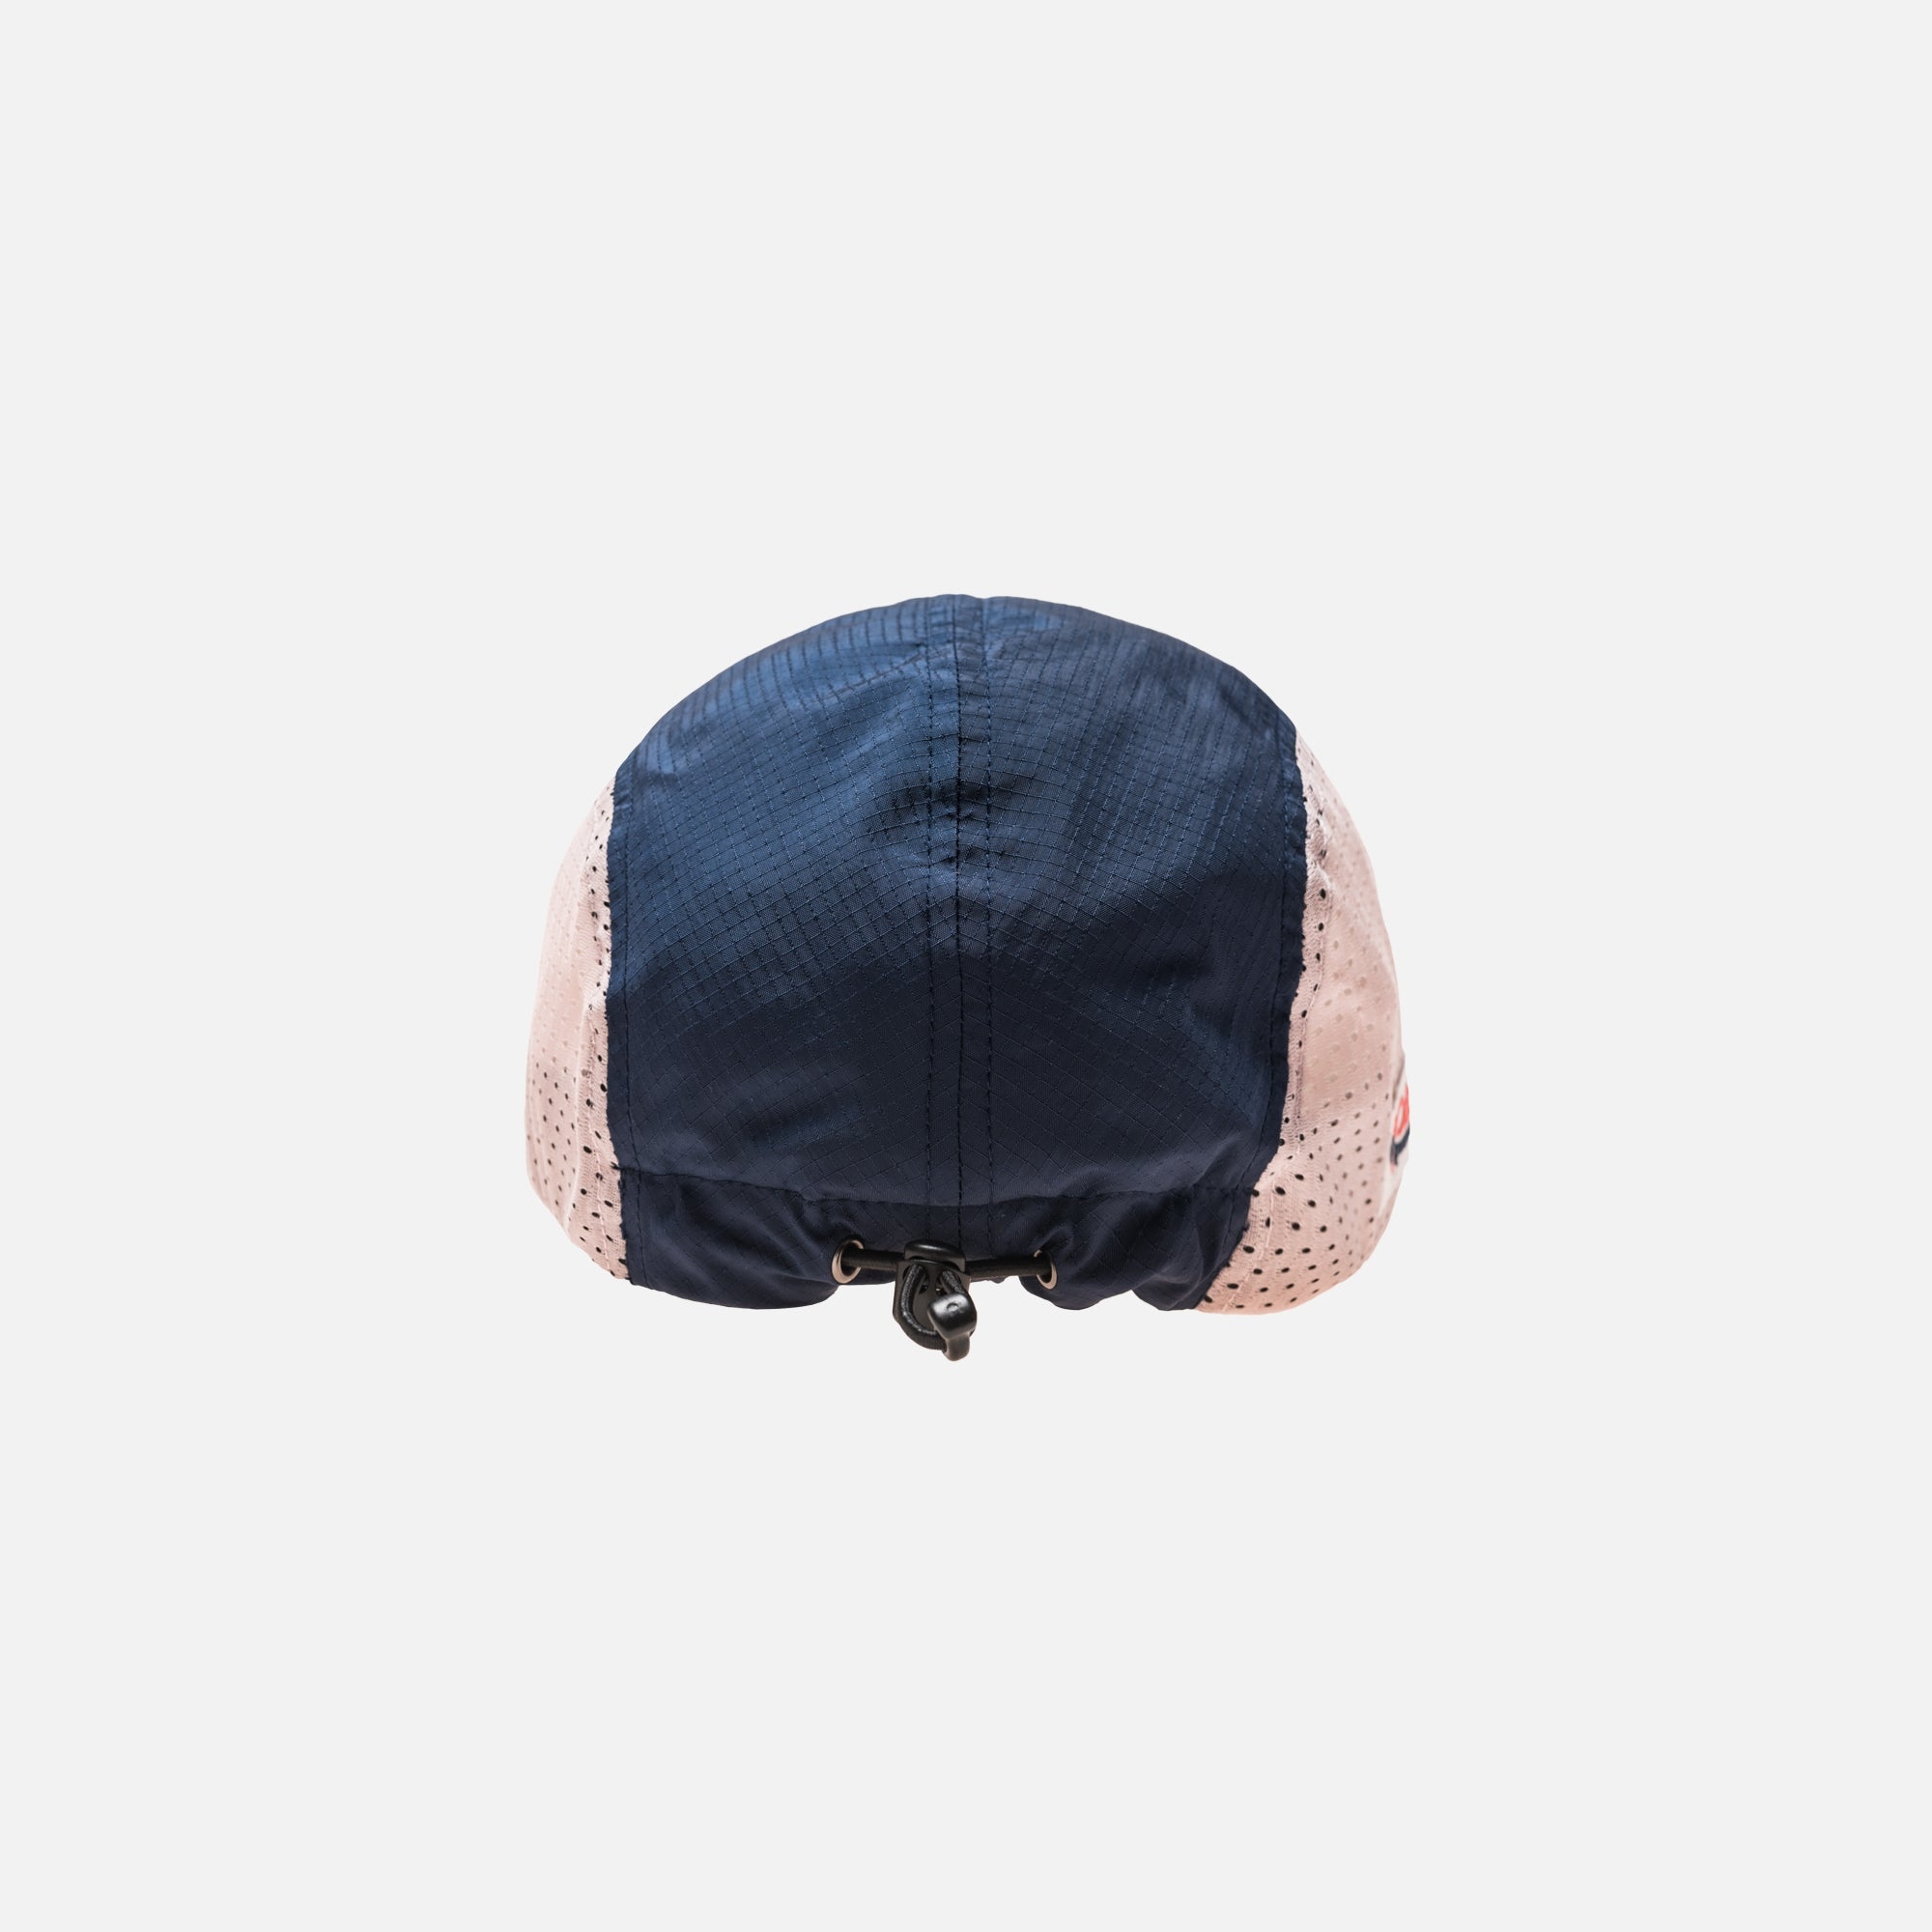 Kith x Columbia Shredder Cap - Navy